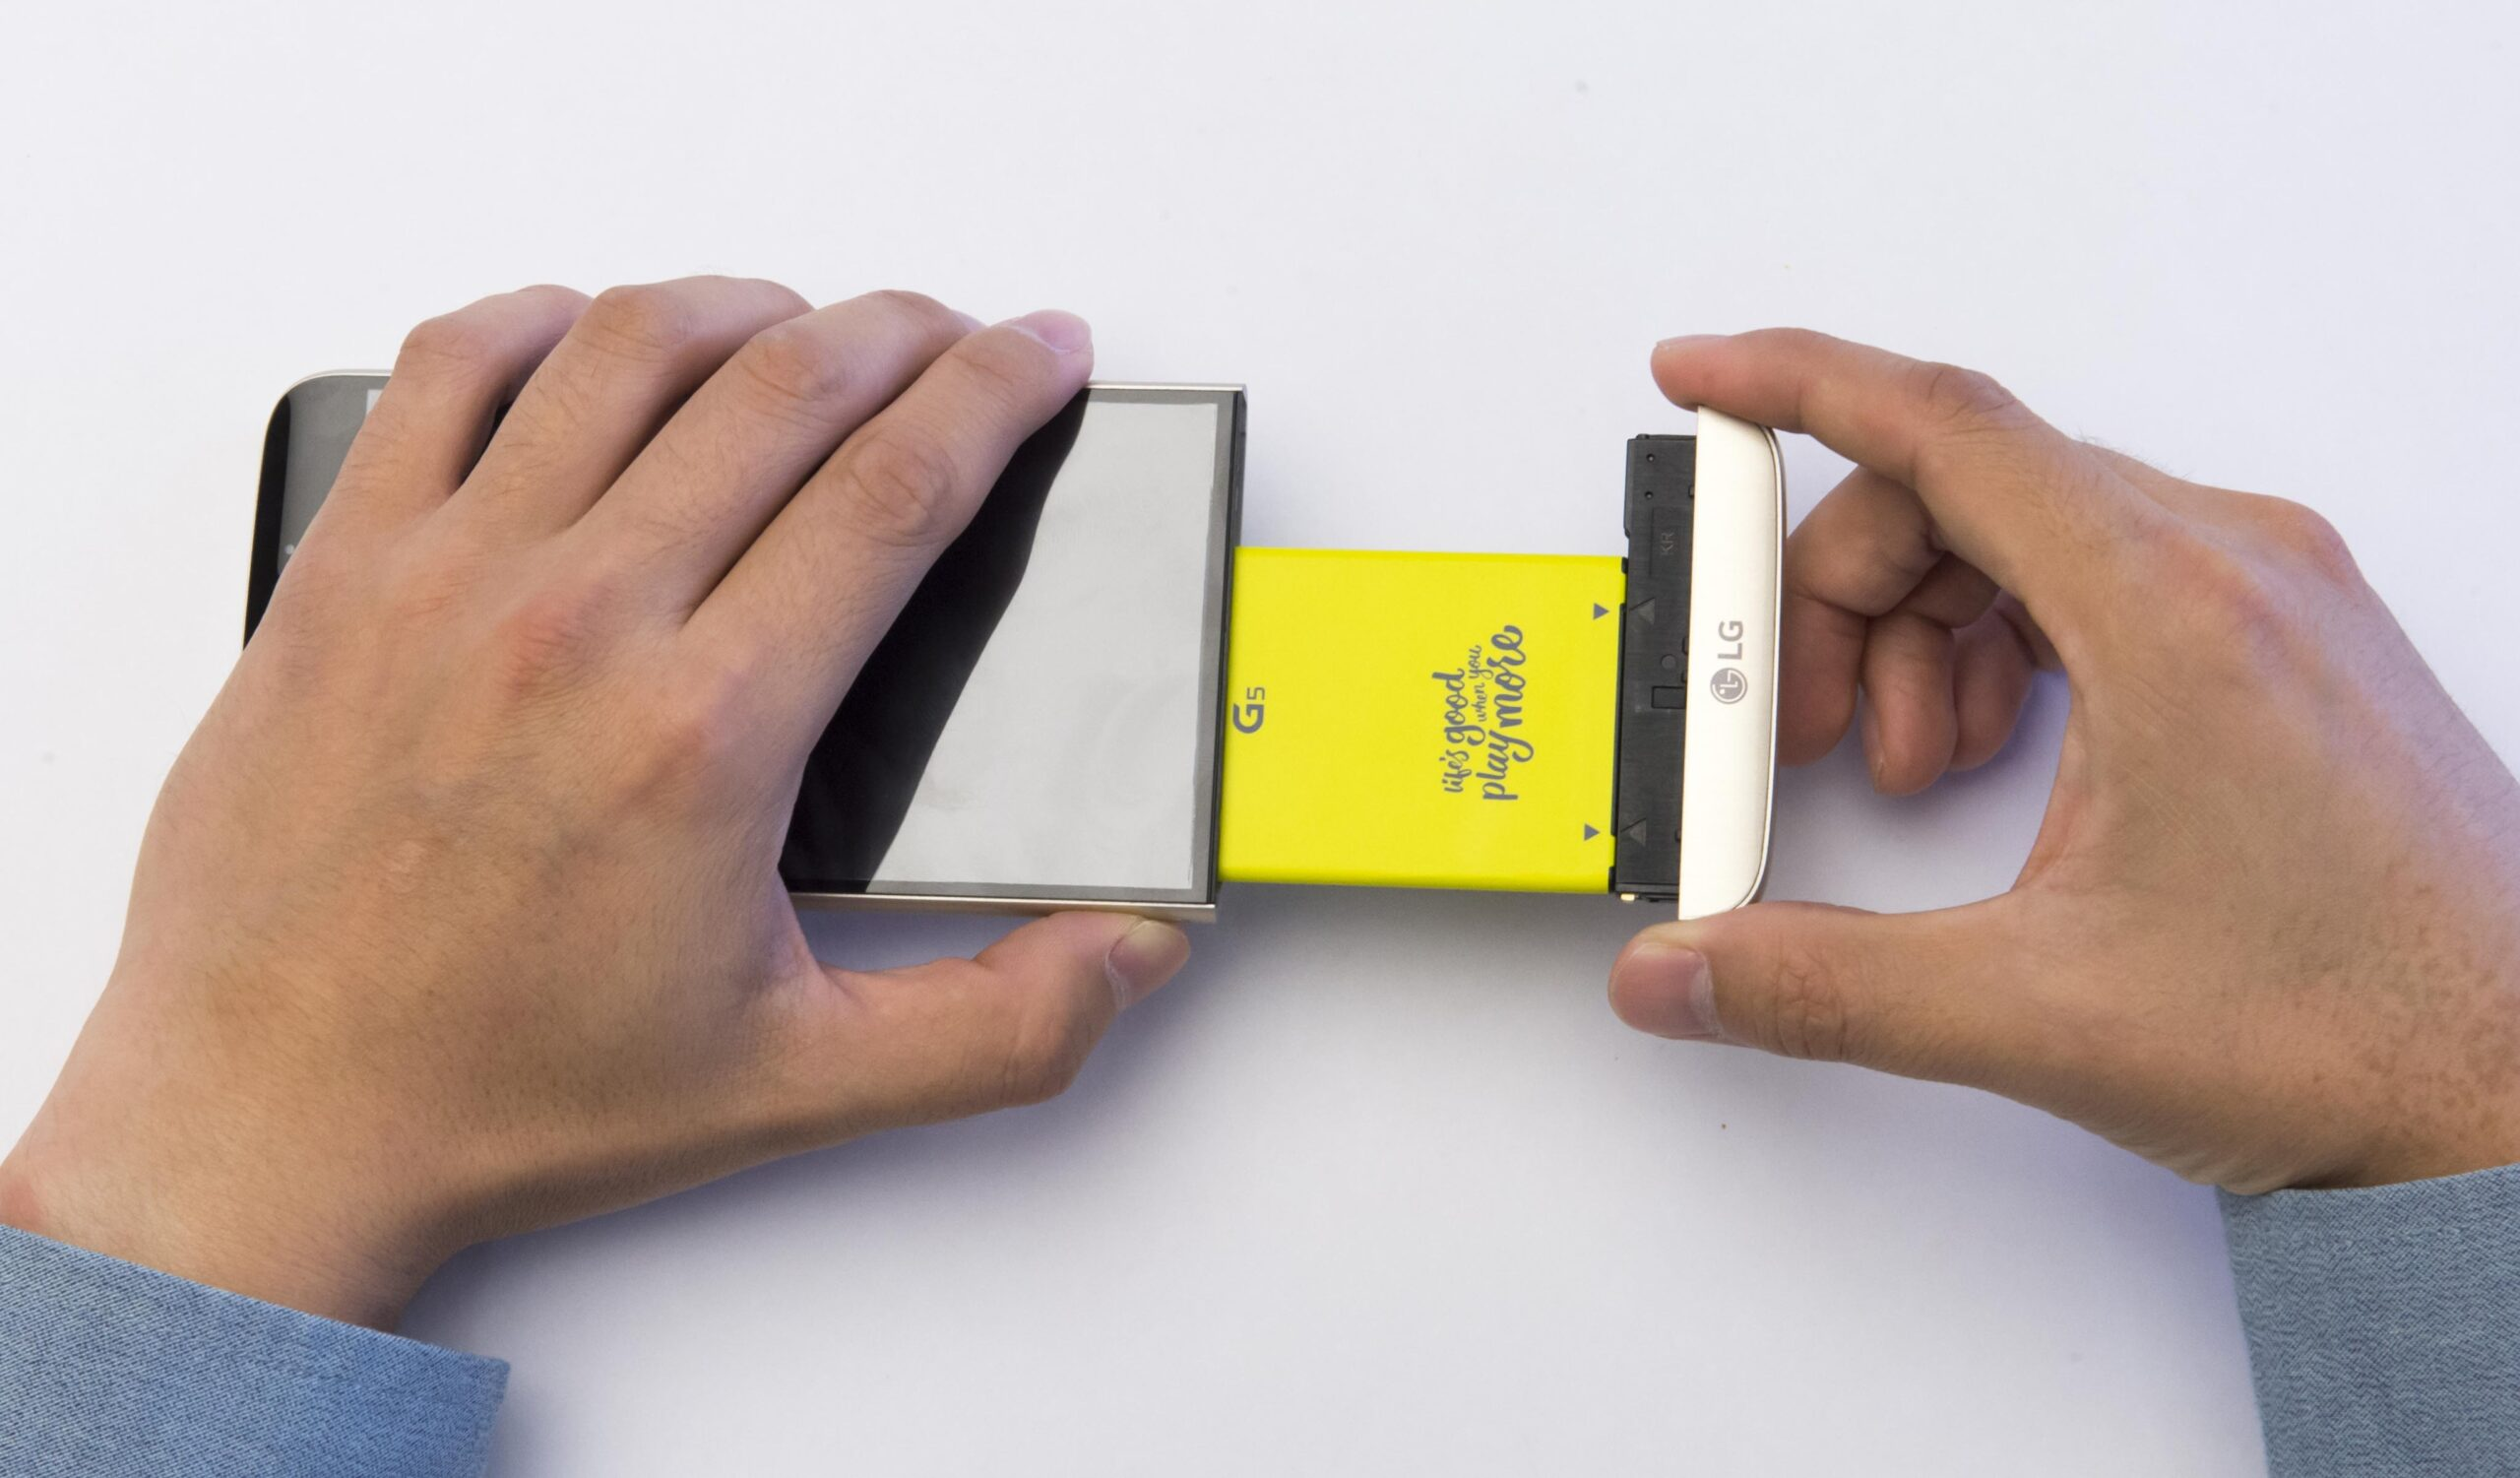 Battery and lower section of LG G5 modular smartphone being removed